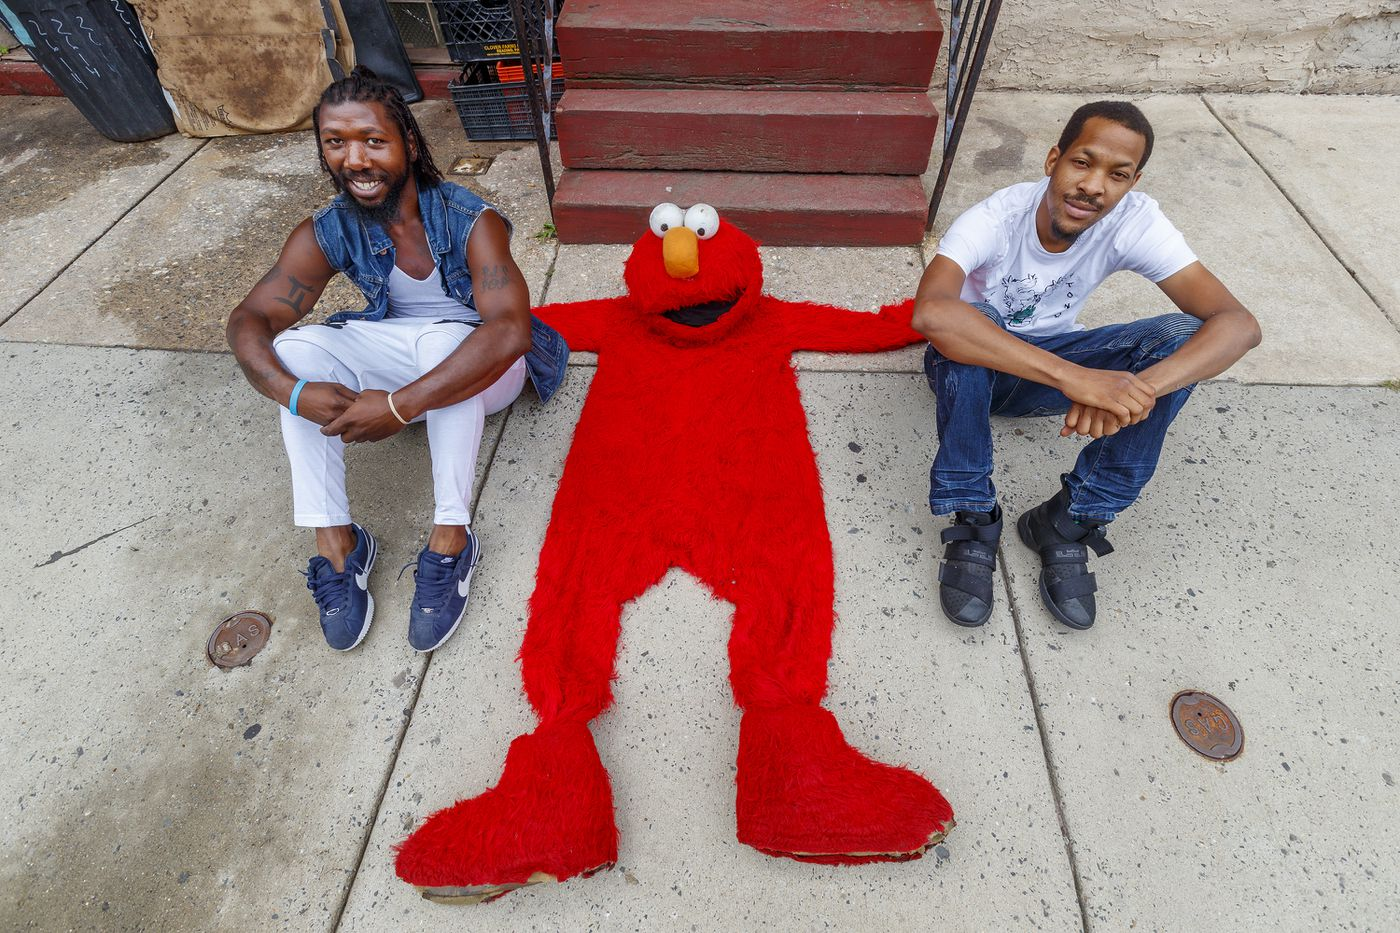 Elmo went viral at the Kensington scrapyard fire – then he got locked up